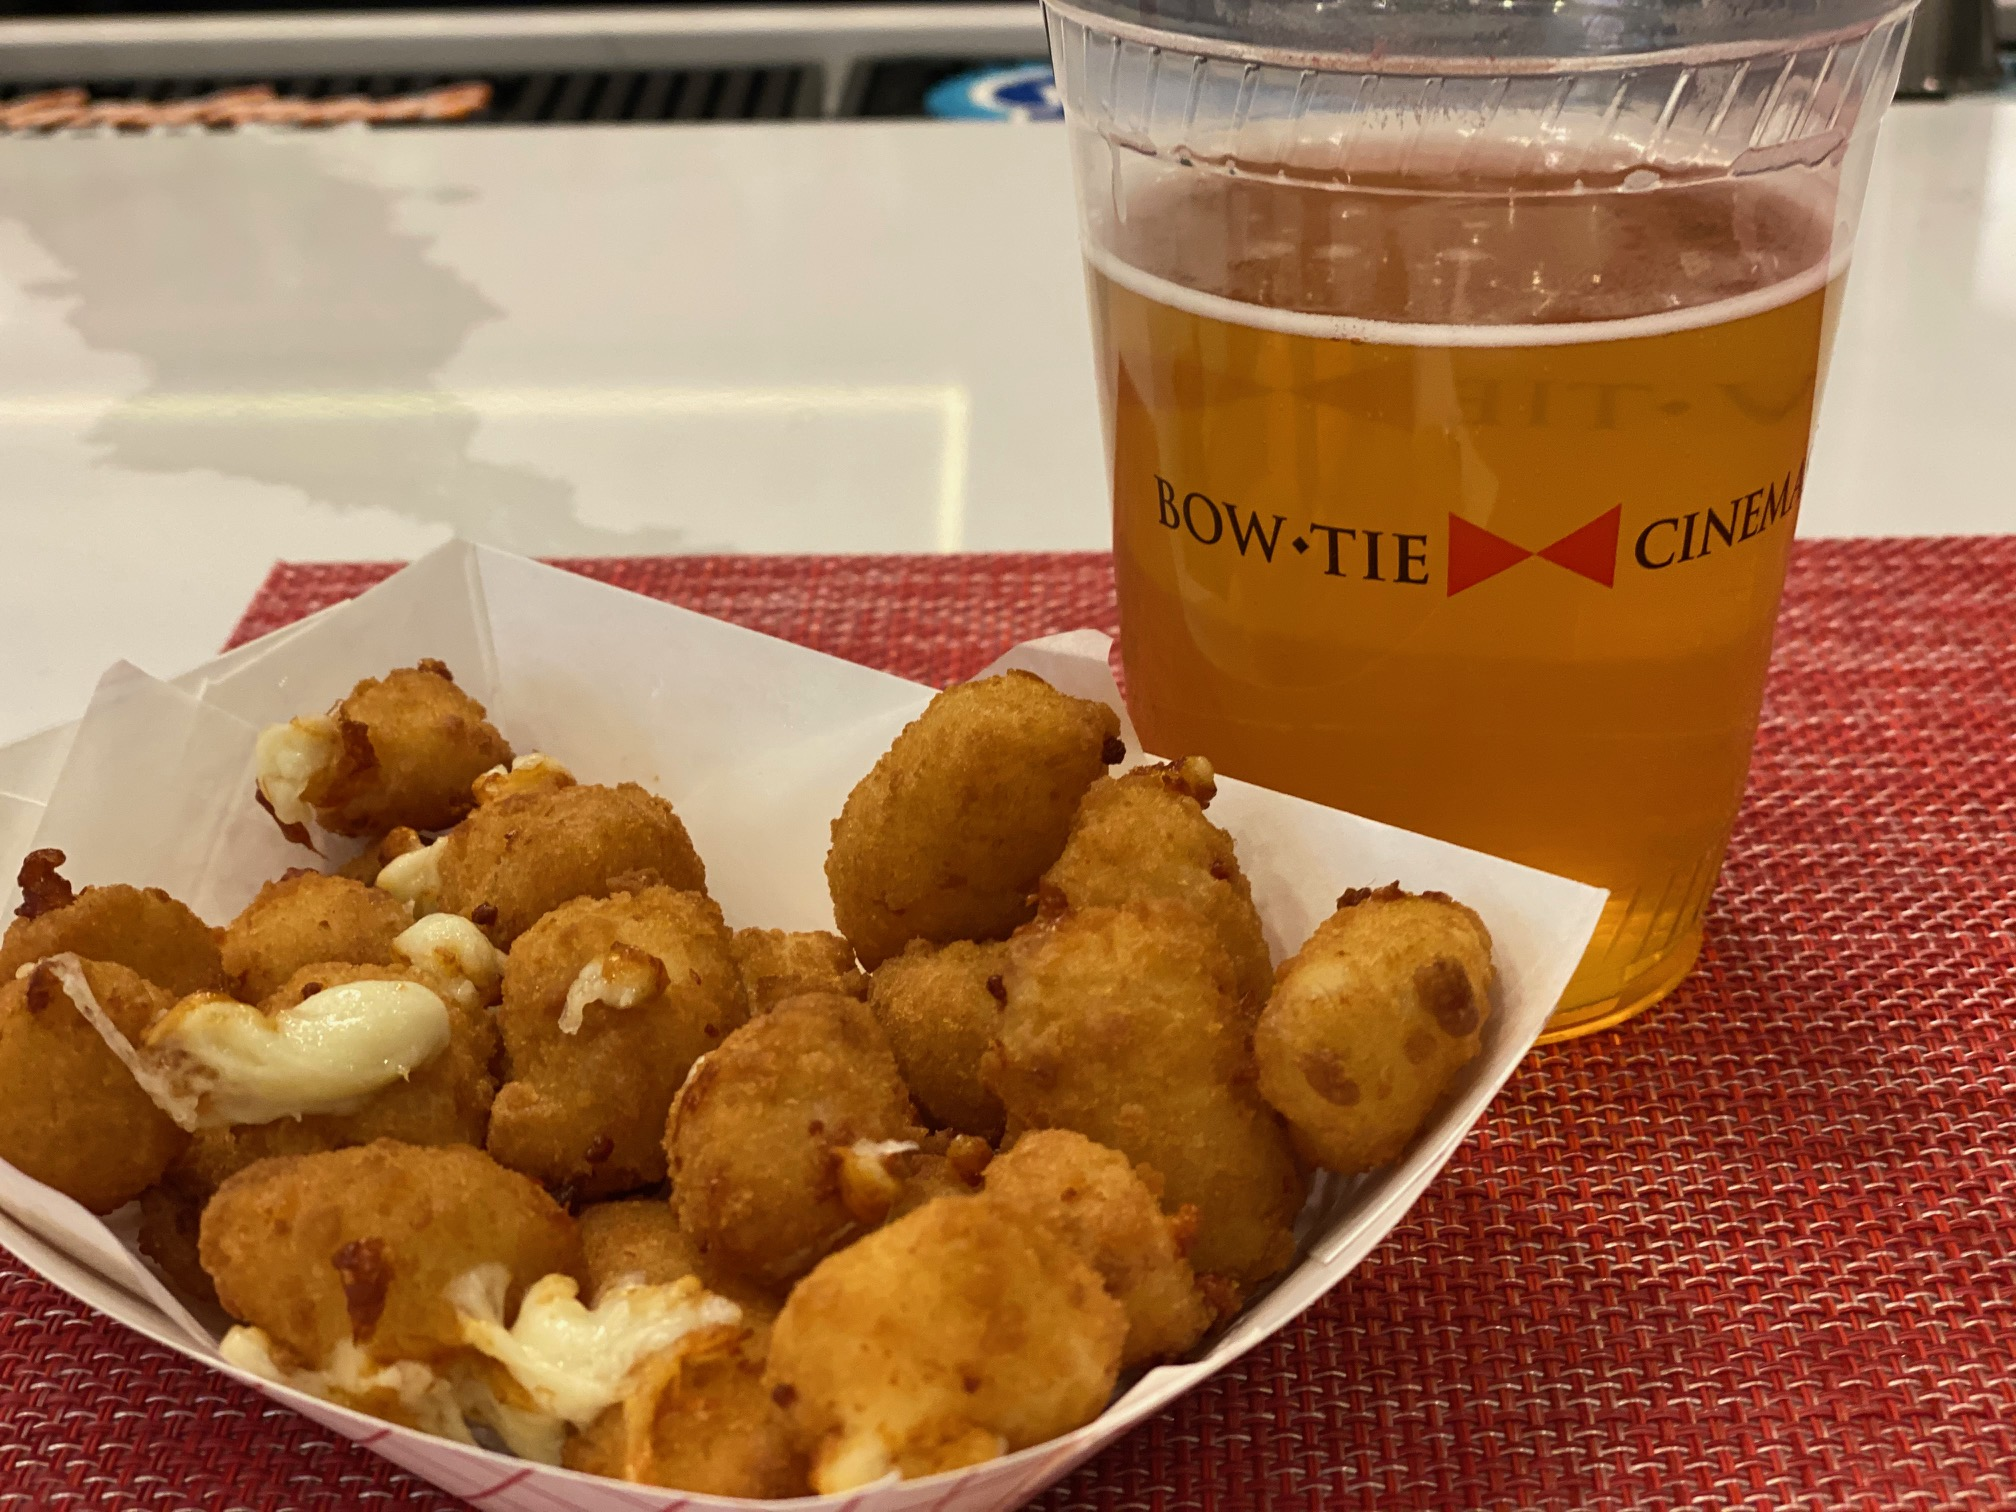 Upgraded Movie-Going Experience at the Bow Tie Cinemas and Majestic Bar in Stamford with beer and cheese curds